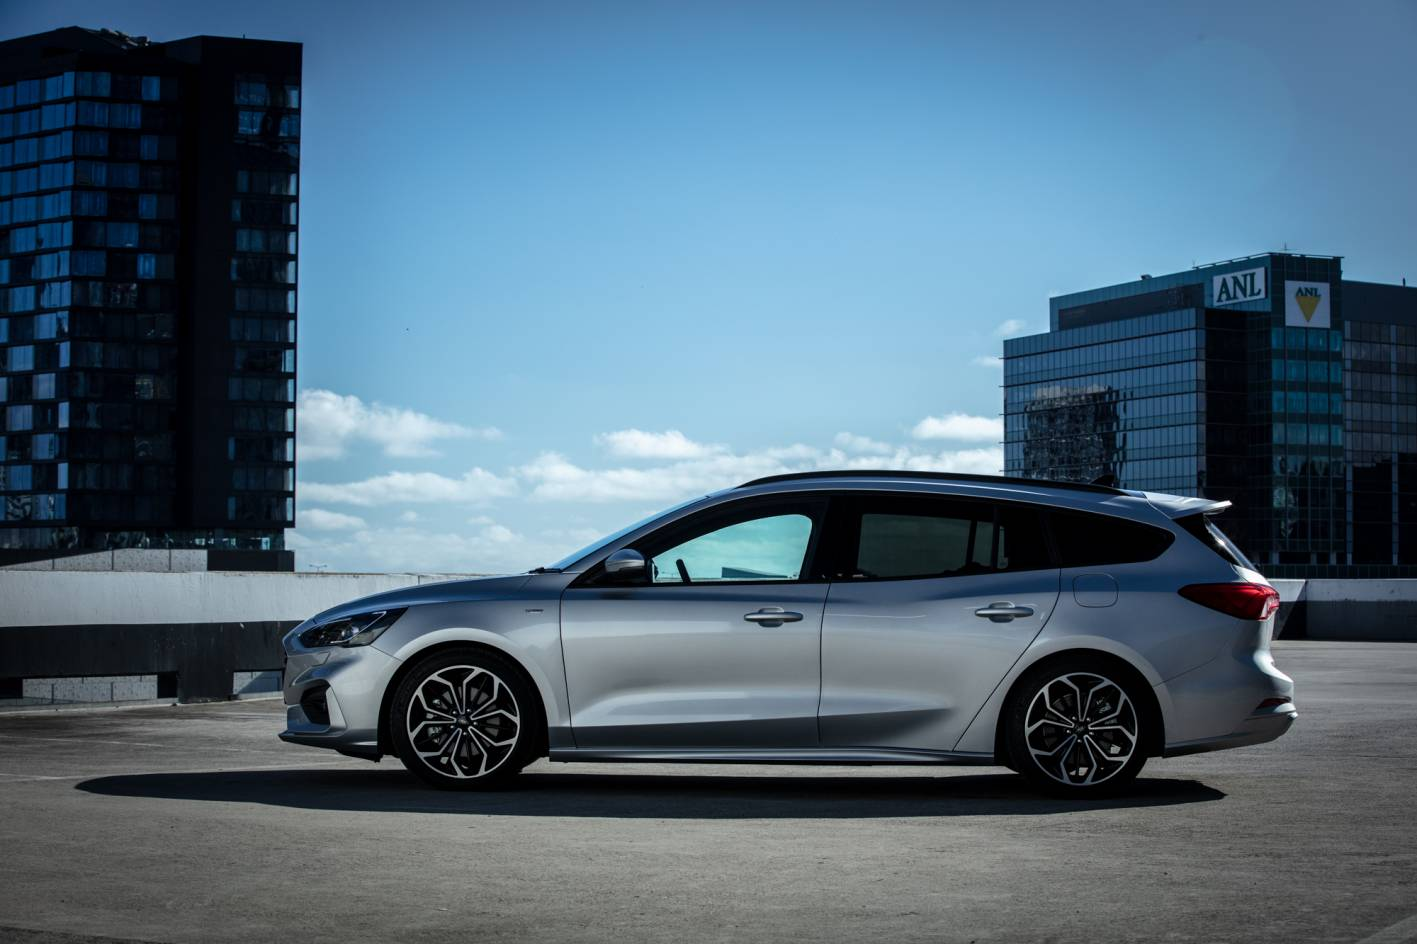 2019 Ford Focus ST-Line Wagon Review | Practical Motoring